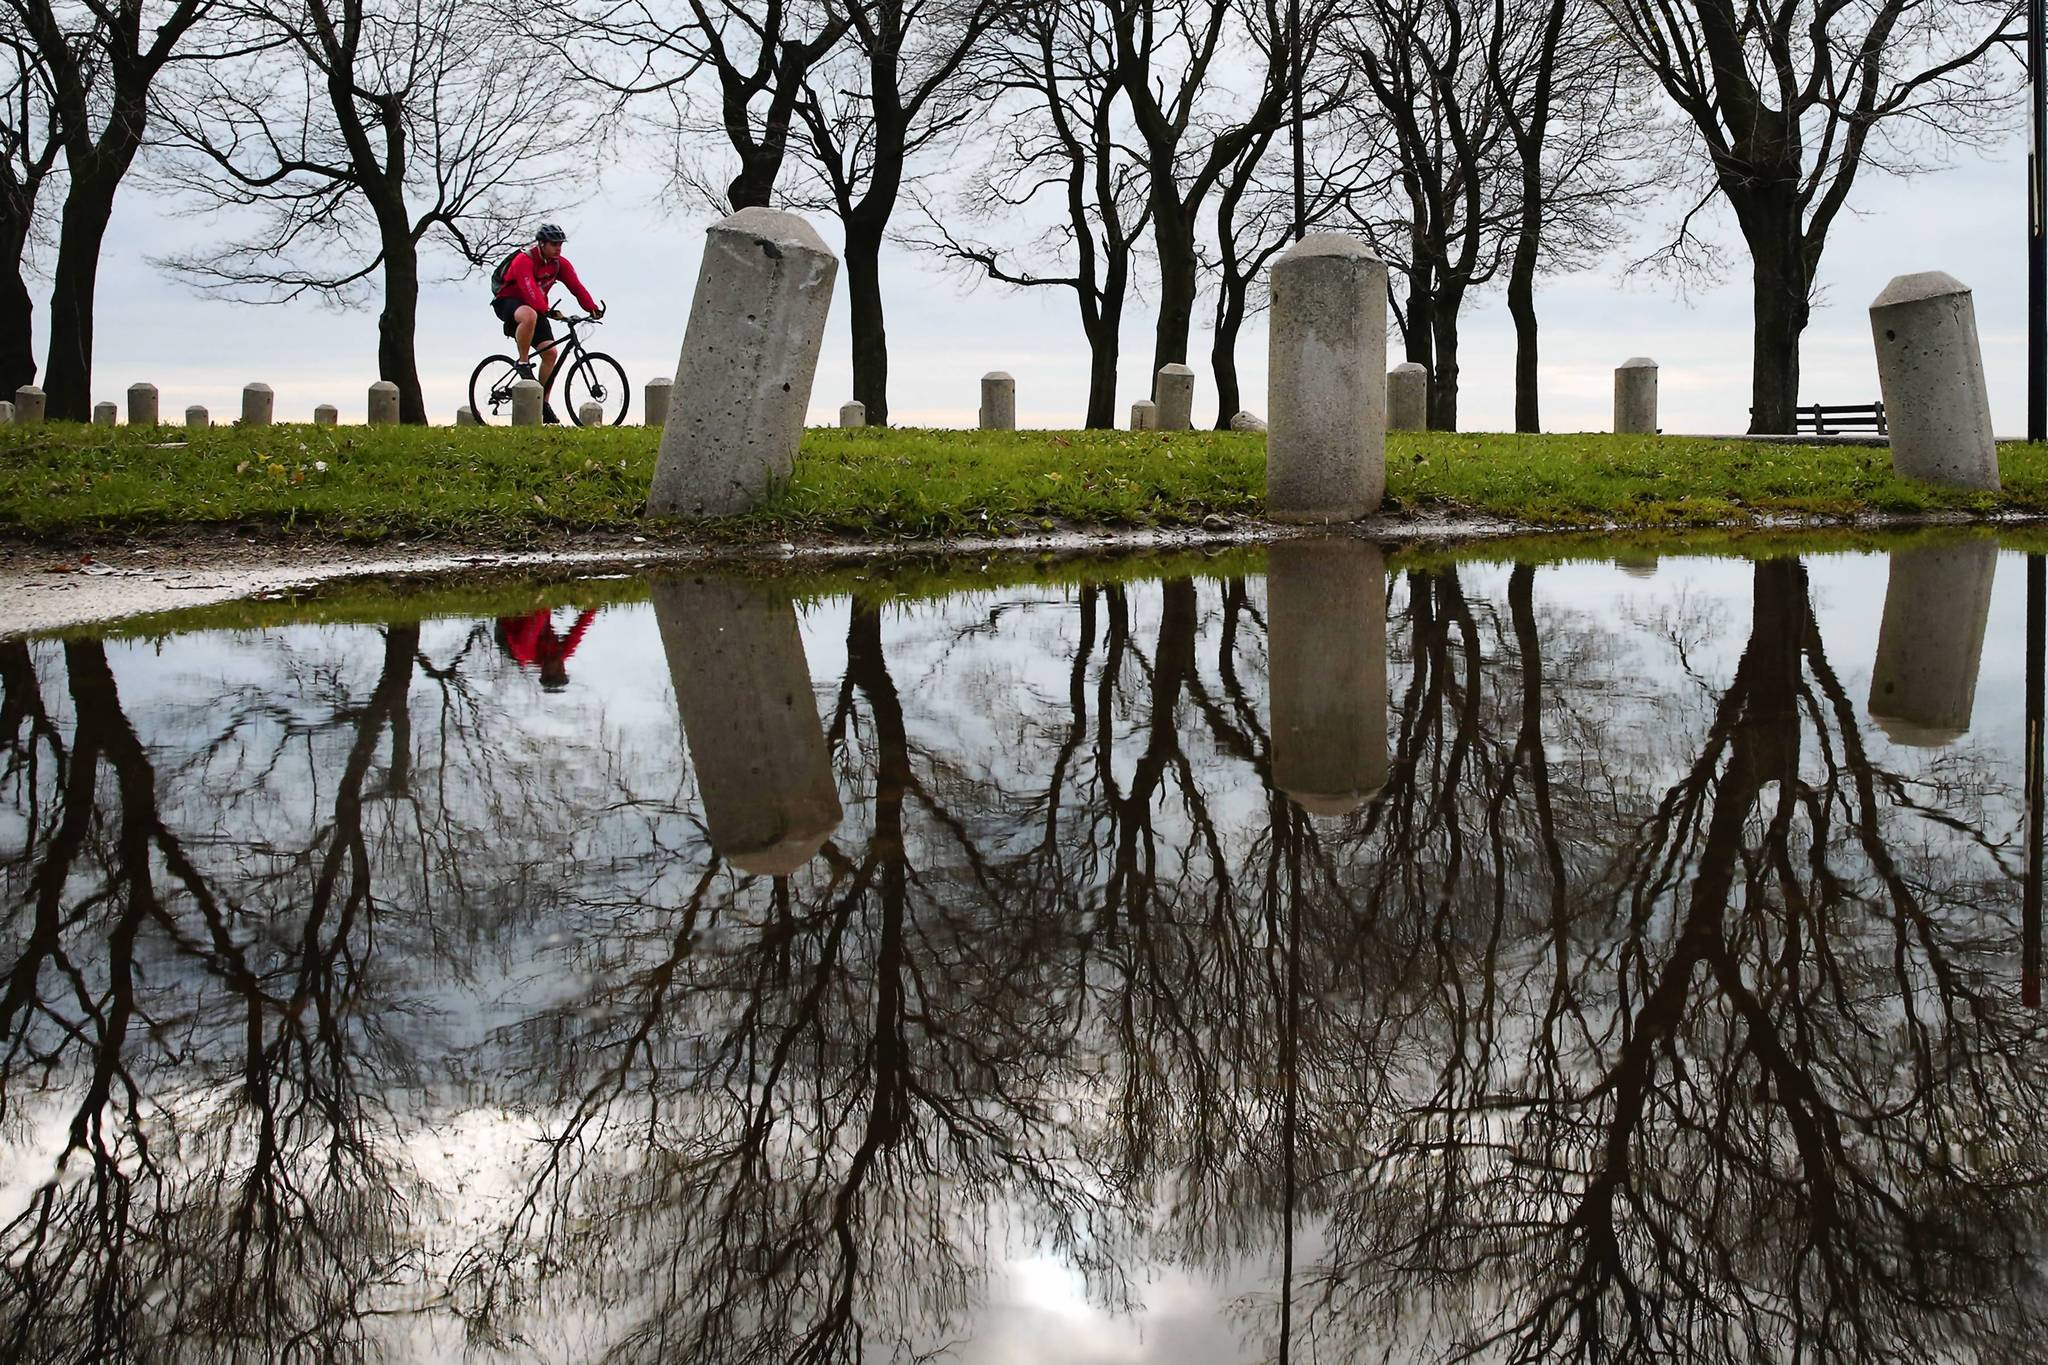 A cloud filled sky is reflected in a puddle near Fullerton Street Beach in Chicago as a cyclist rides south along Lake Michigan.